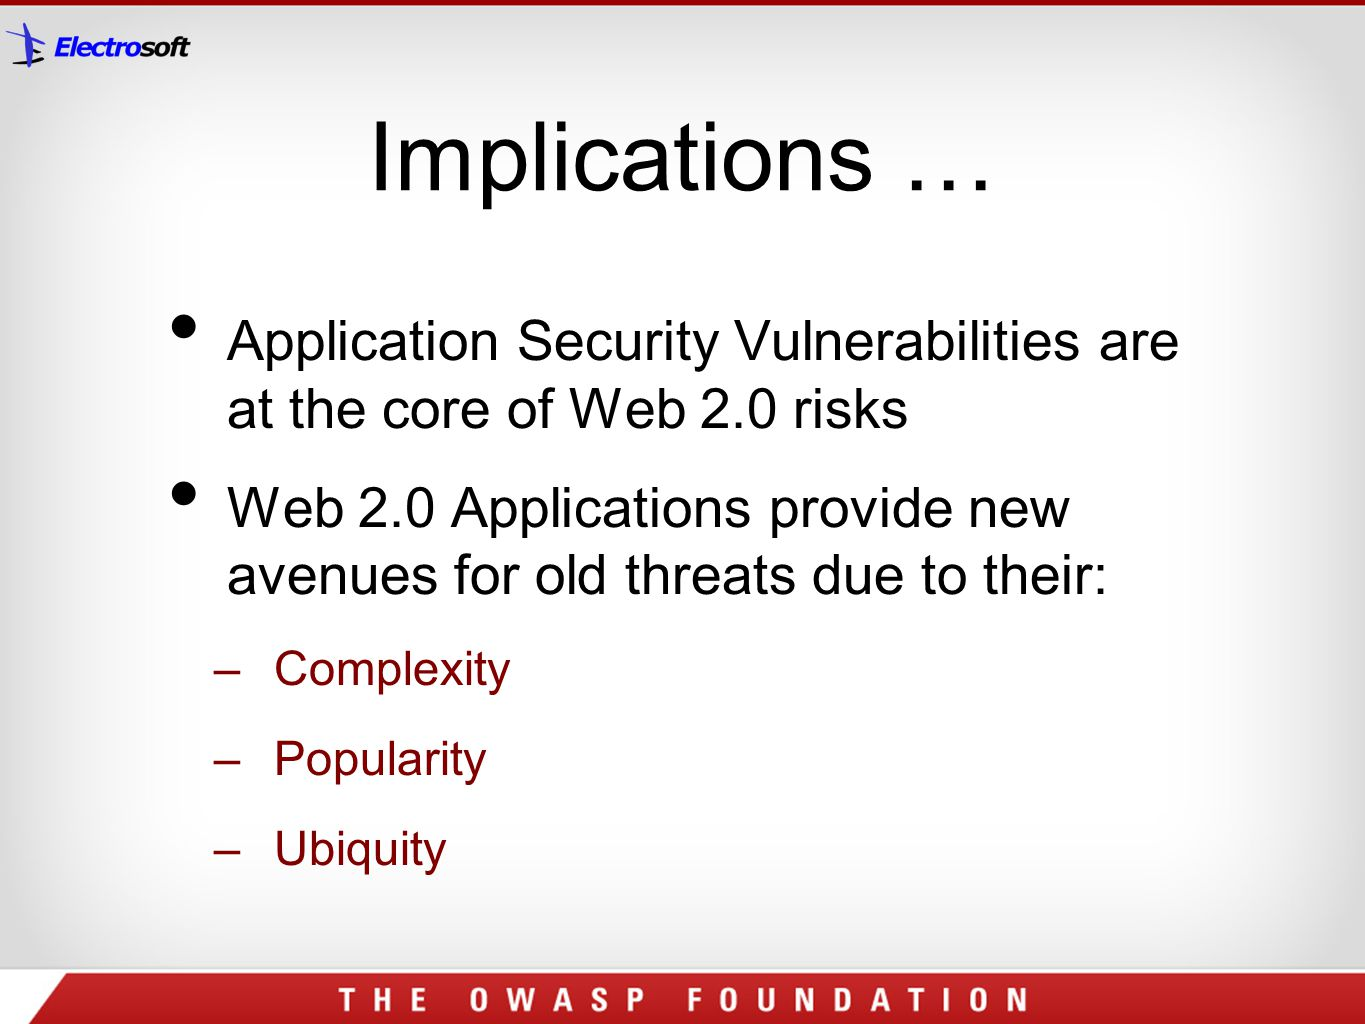 Implications … Application Security Vulnerabilities are at the core of Web 2.0 risks.